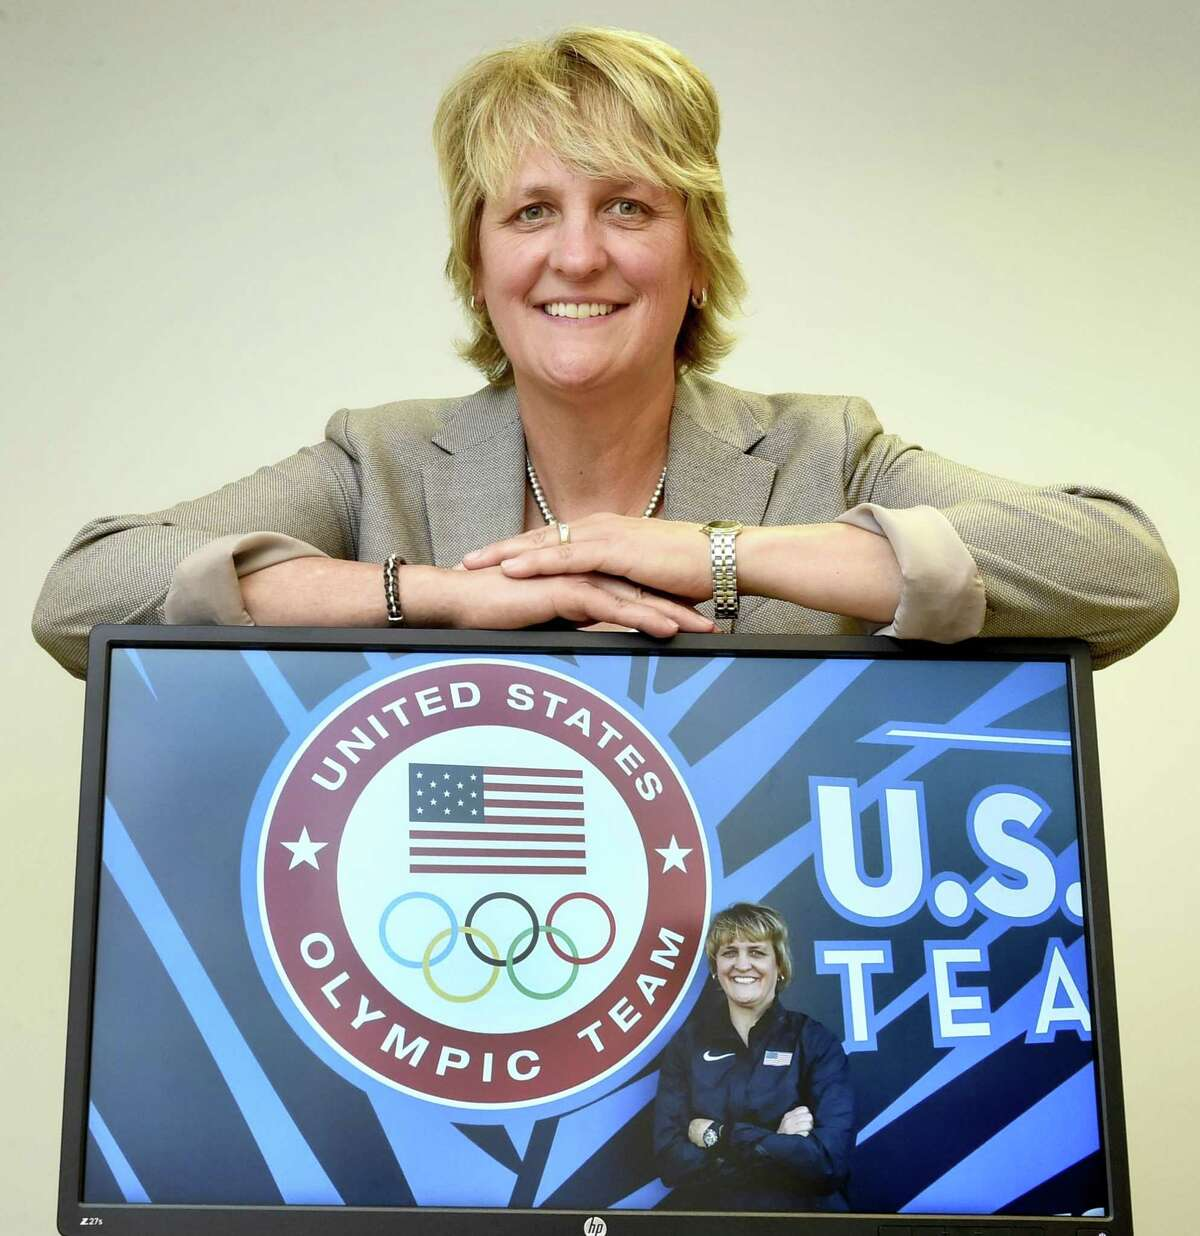 Bonnie Edmondson, Associate Professor of School Health Education, a with a photo of herself during the July 2016 U.S. Track and Field Olympic Trials in Eugene, Oregon.